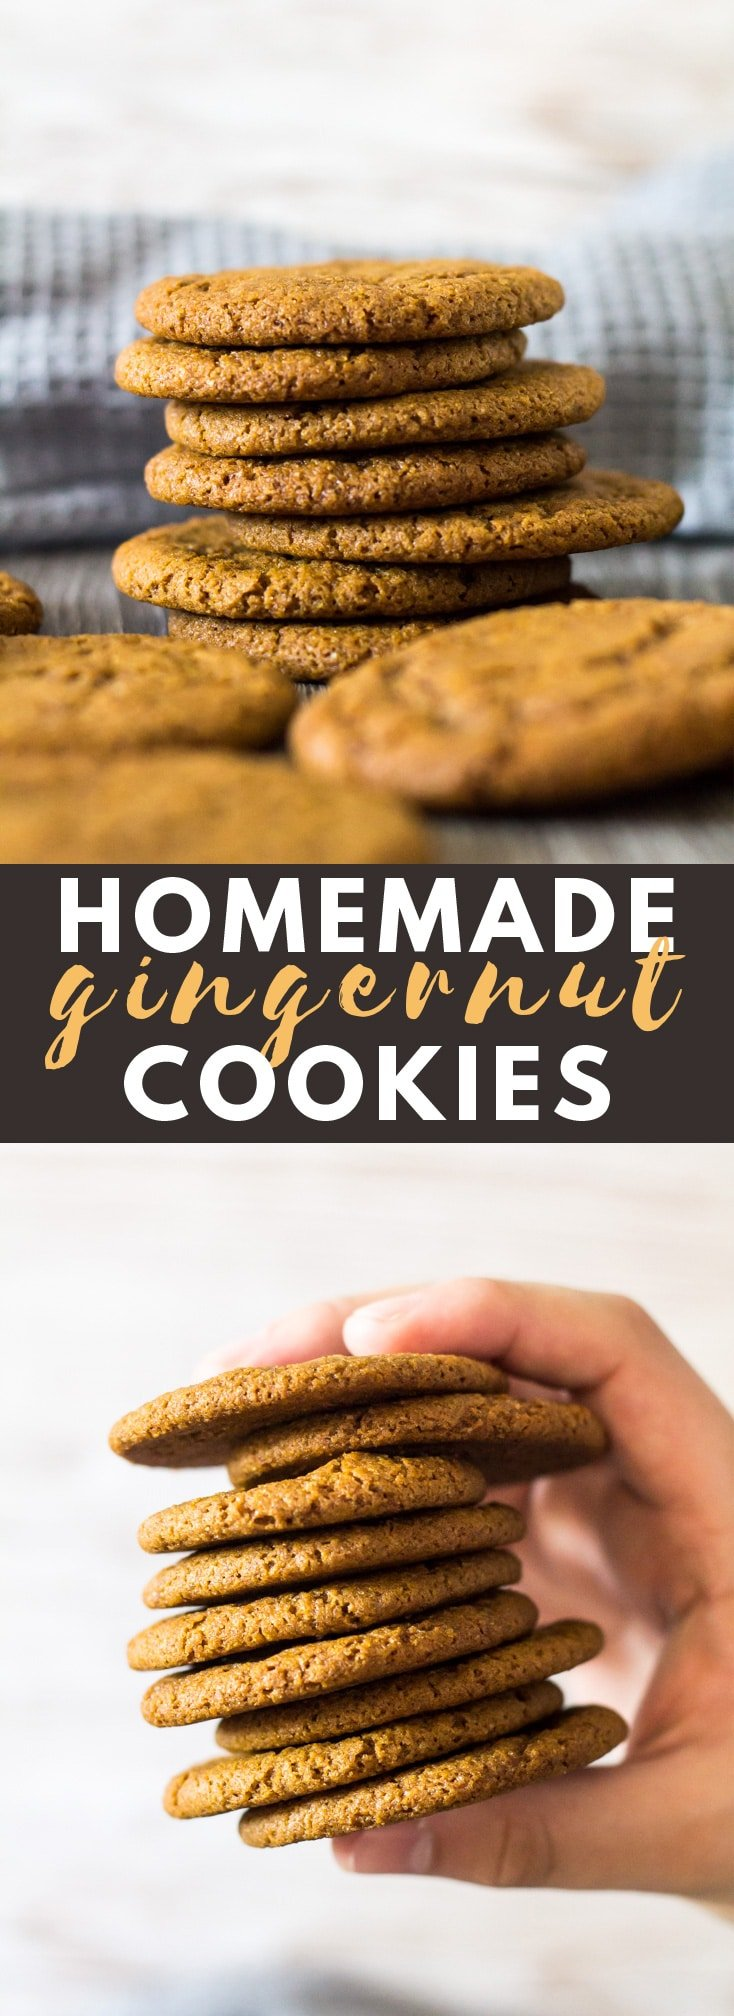 Homemade Gingernut Cookies - Deliciously crunchy and chewy ginger-spiced cookies that are better than store-bought. Perfect for dunking in tea or coffee!